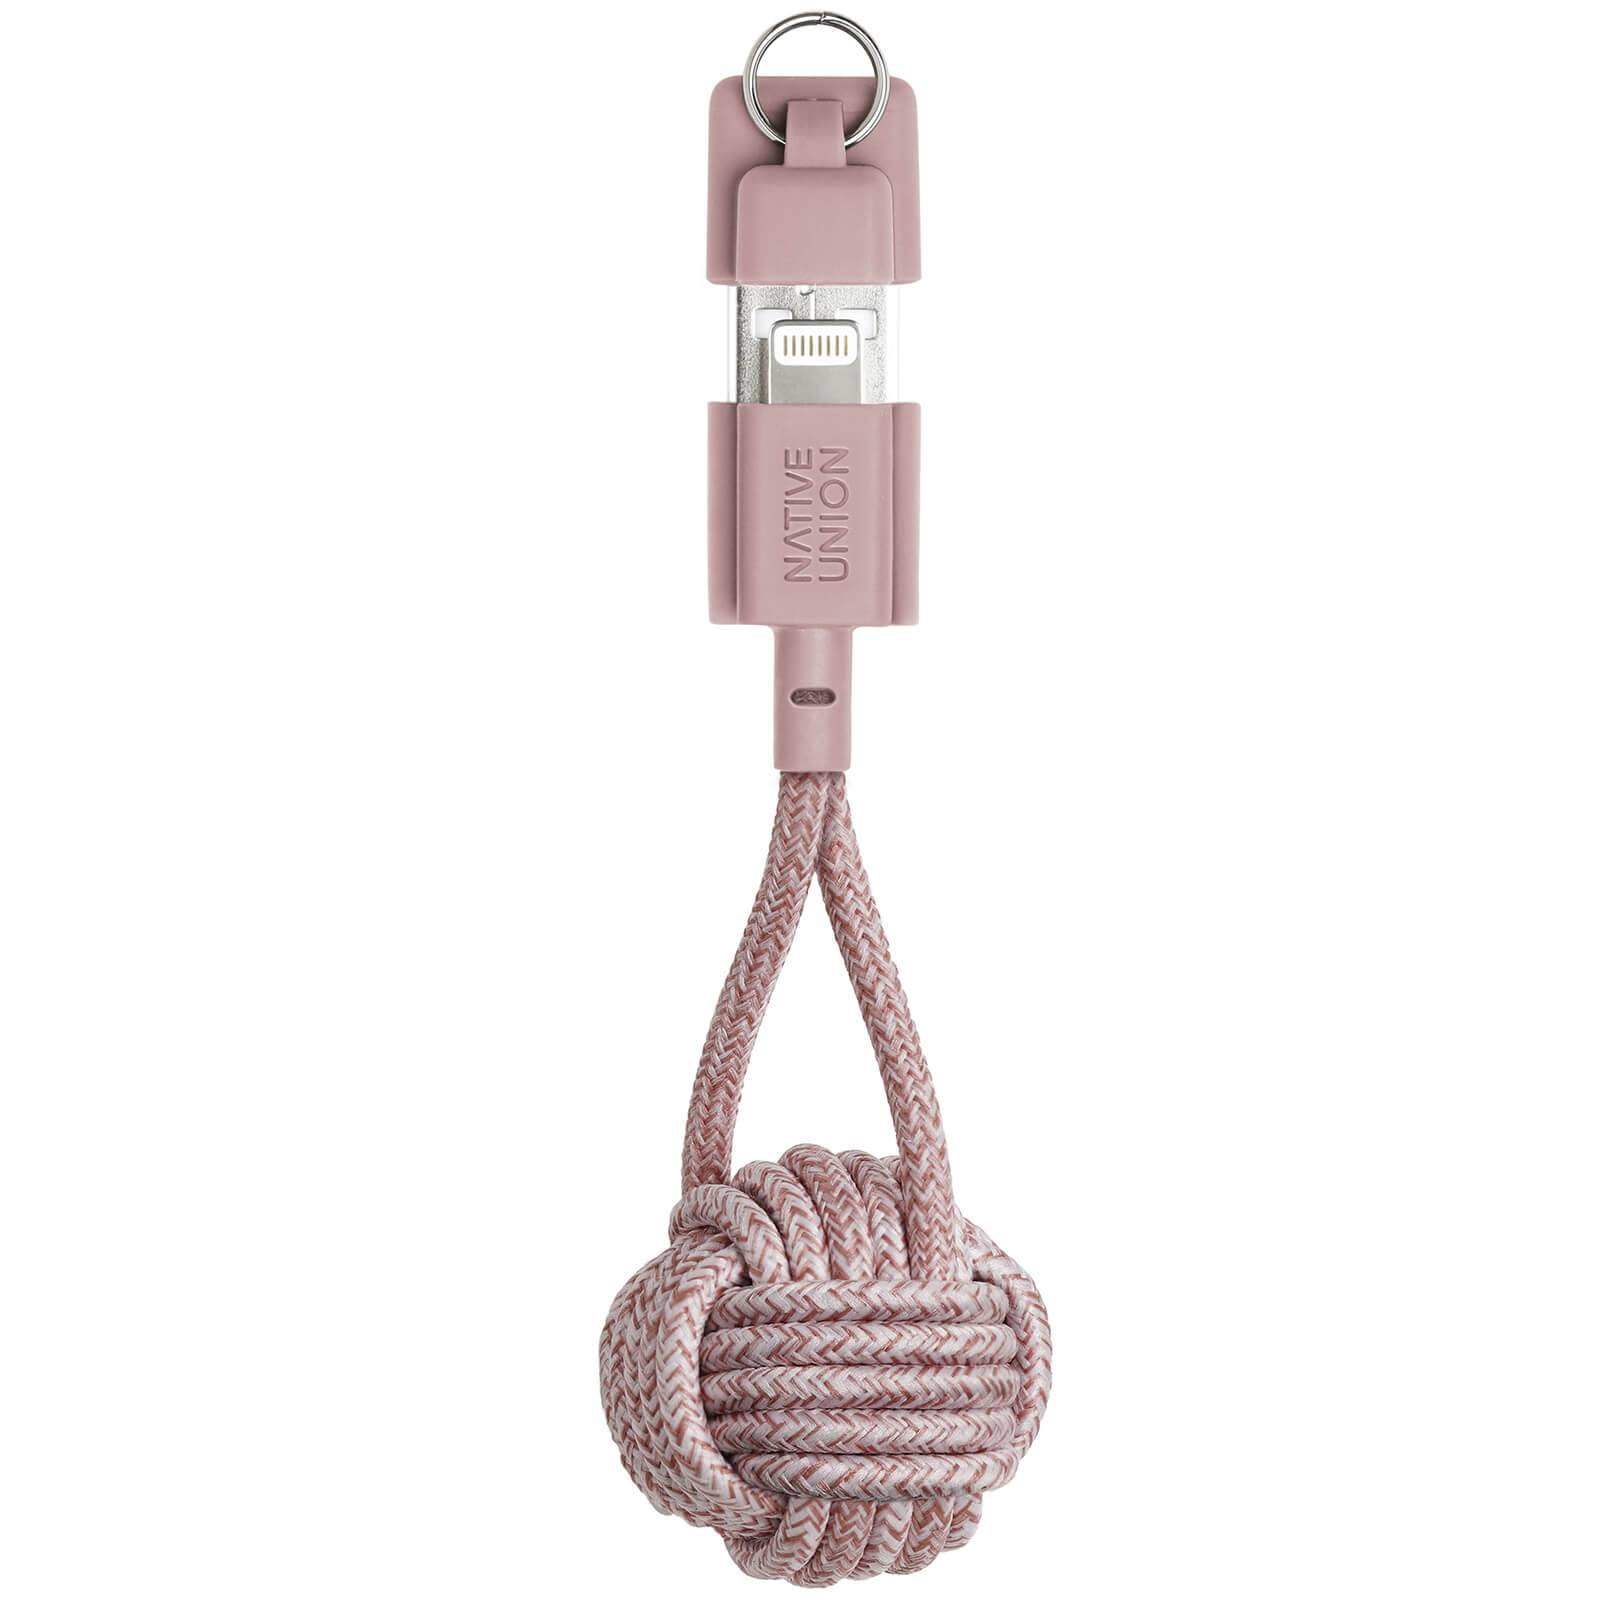 Native Union Key Cable - Rose